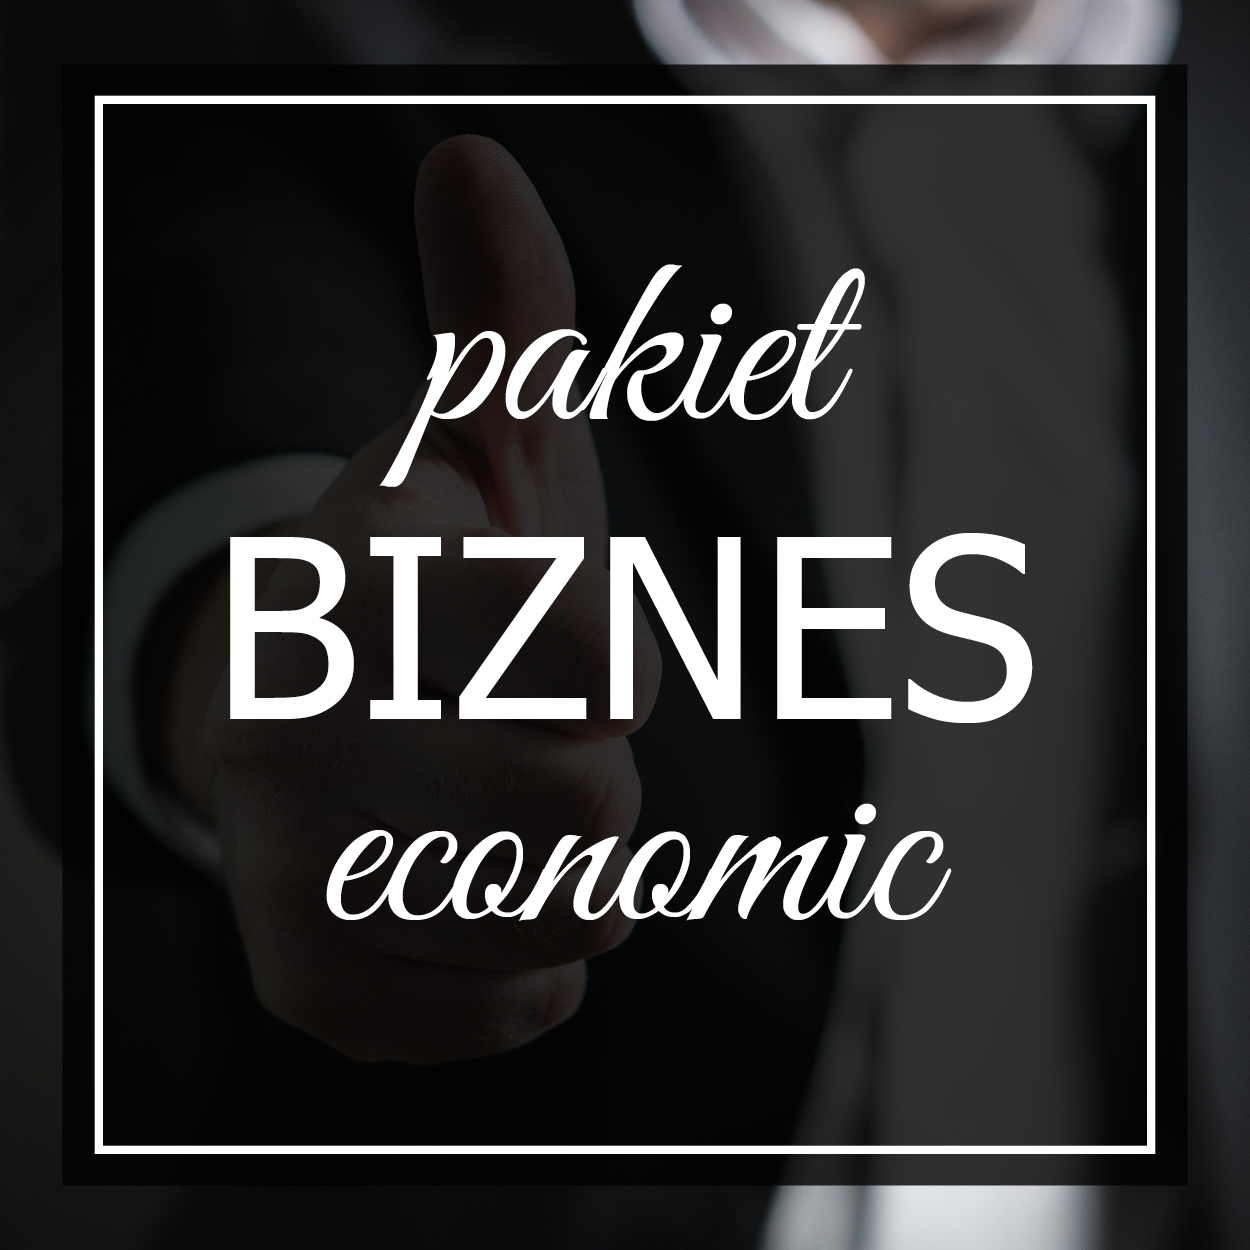 Pakiet biznes economic